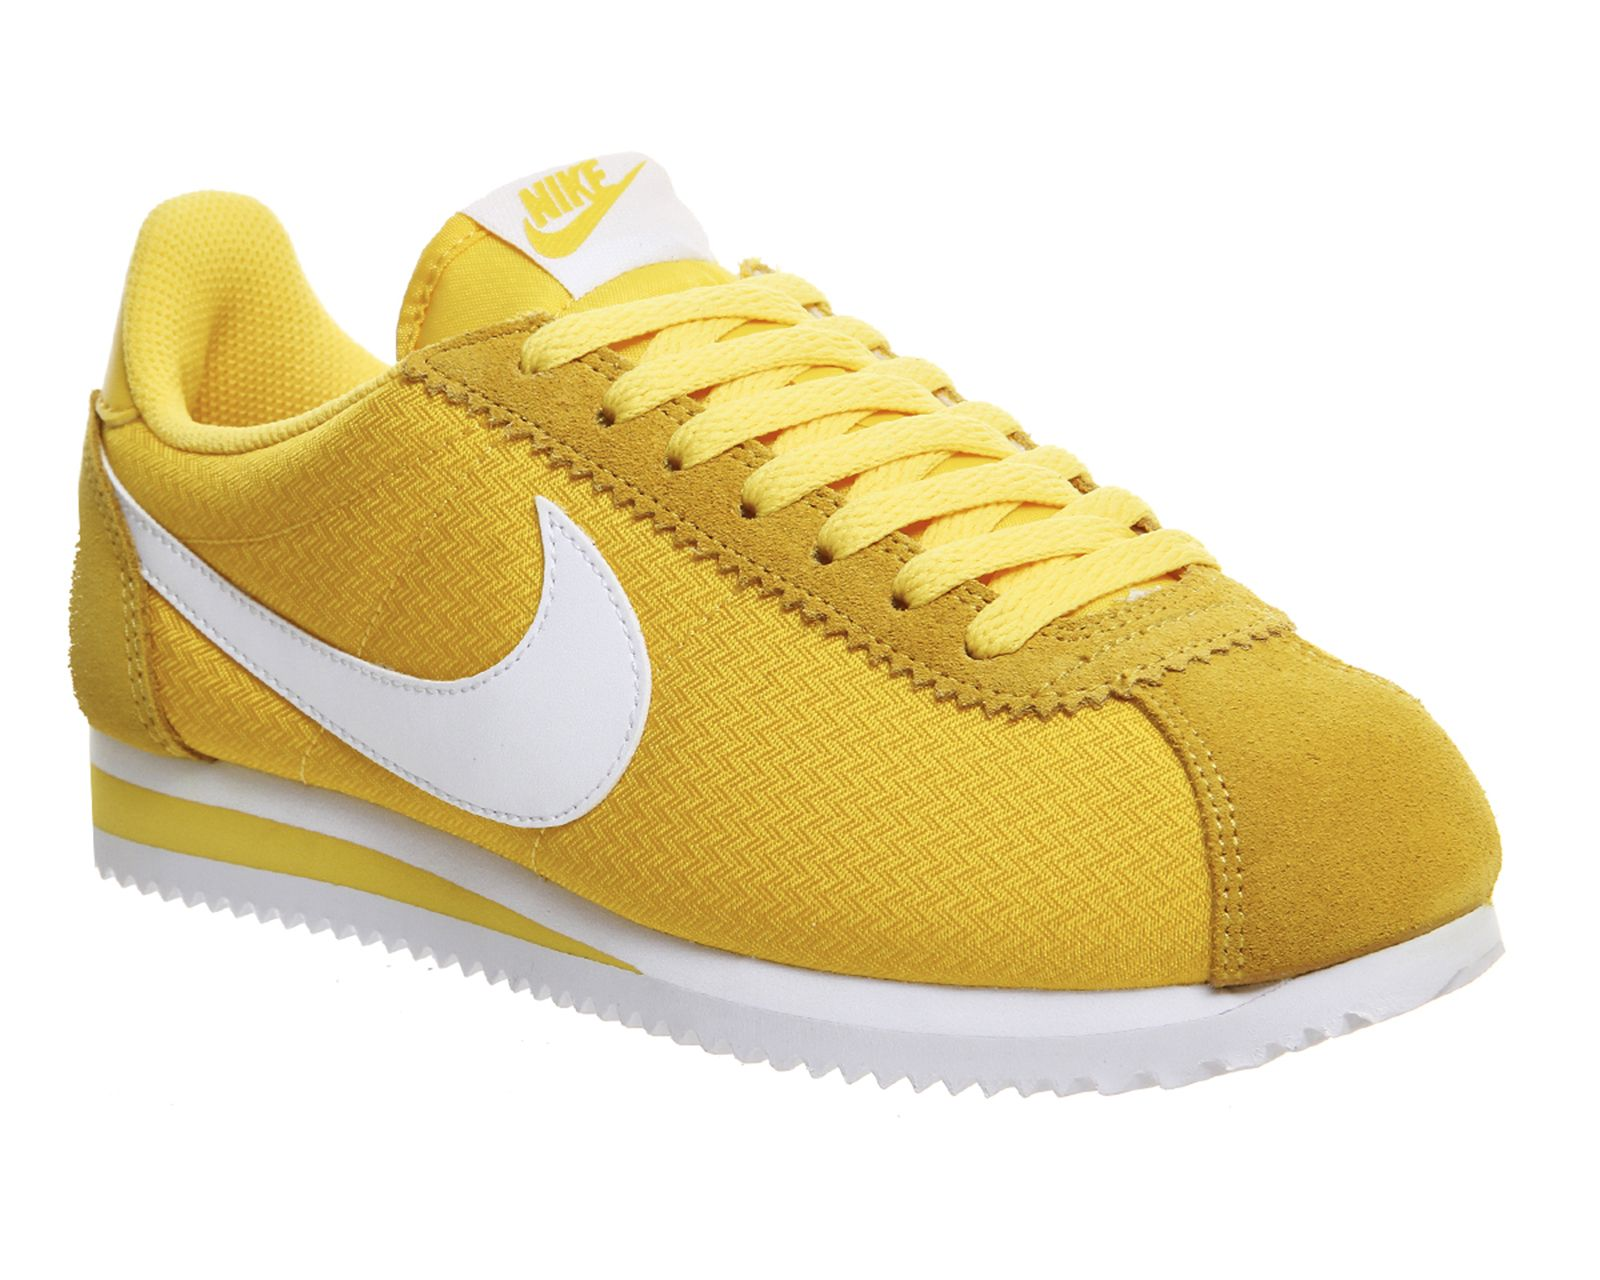 Buy Varsity Maize White Nike Cortez Nylon from OFFICE.co.uk.